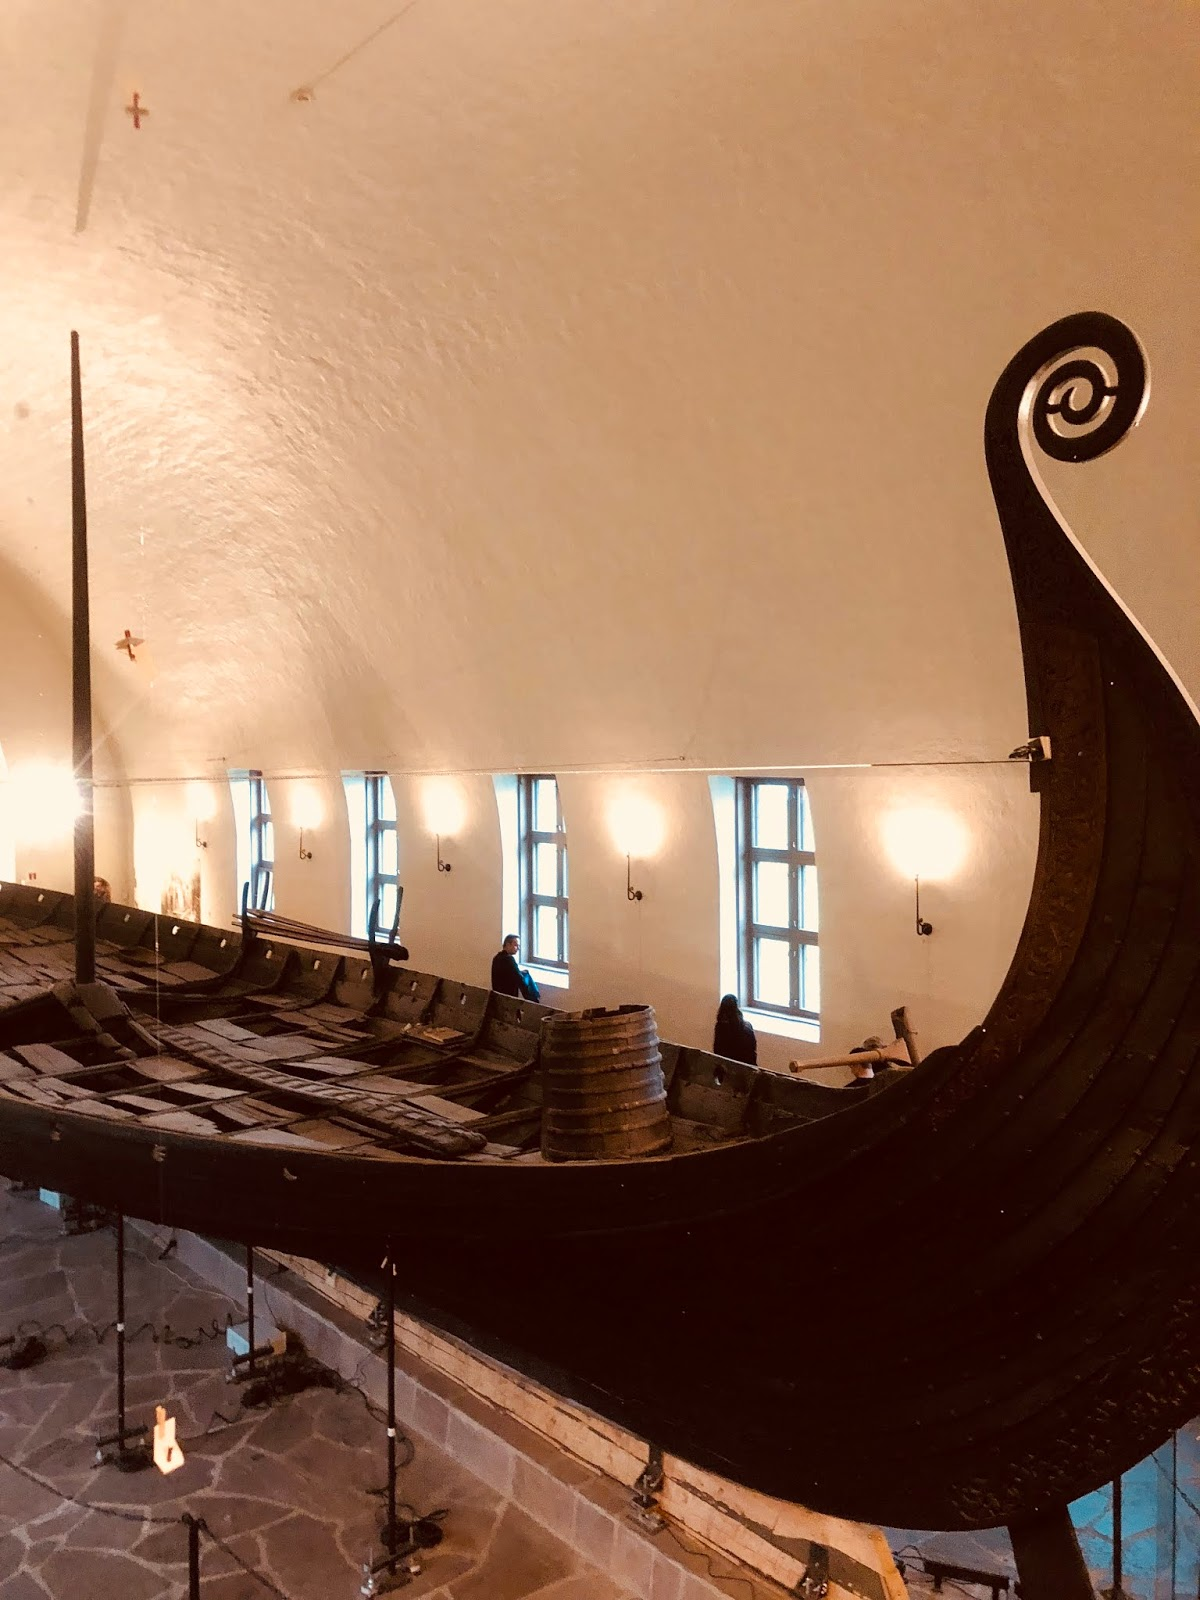 Oslo Vikings Ship museum